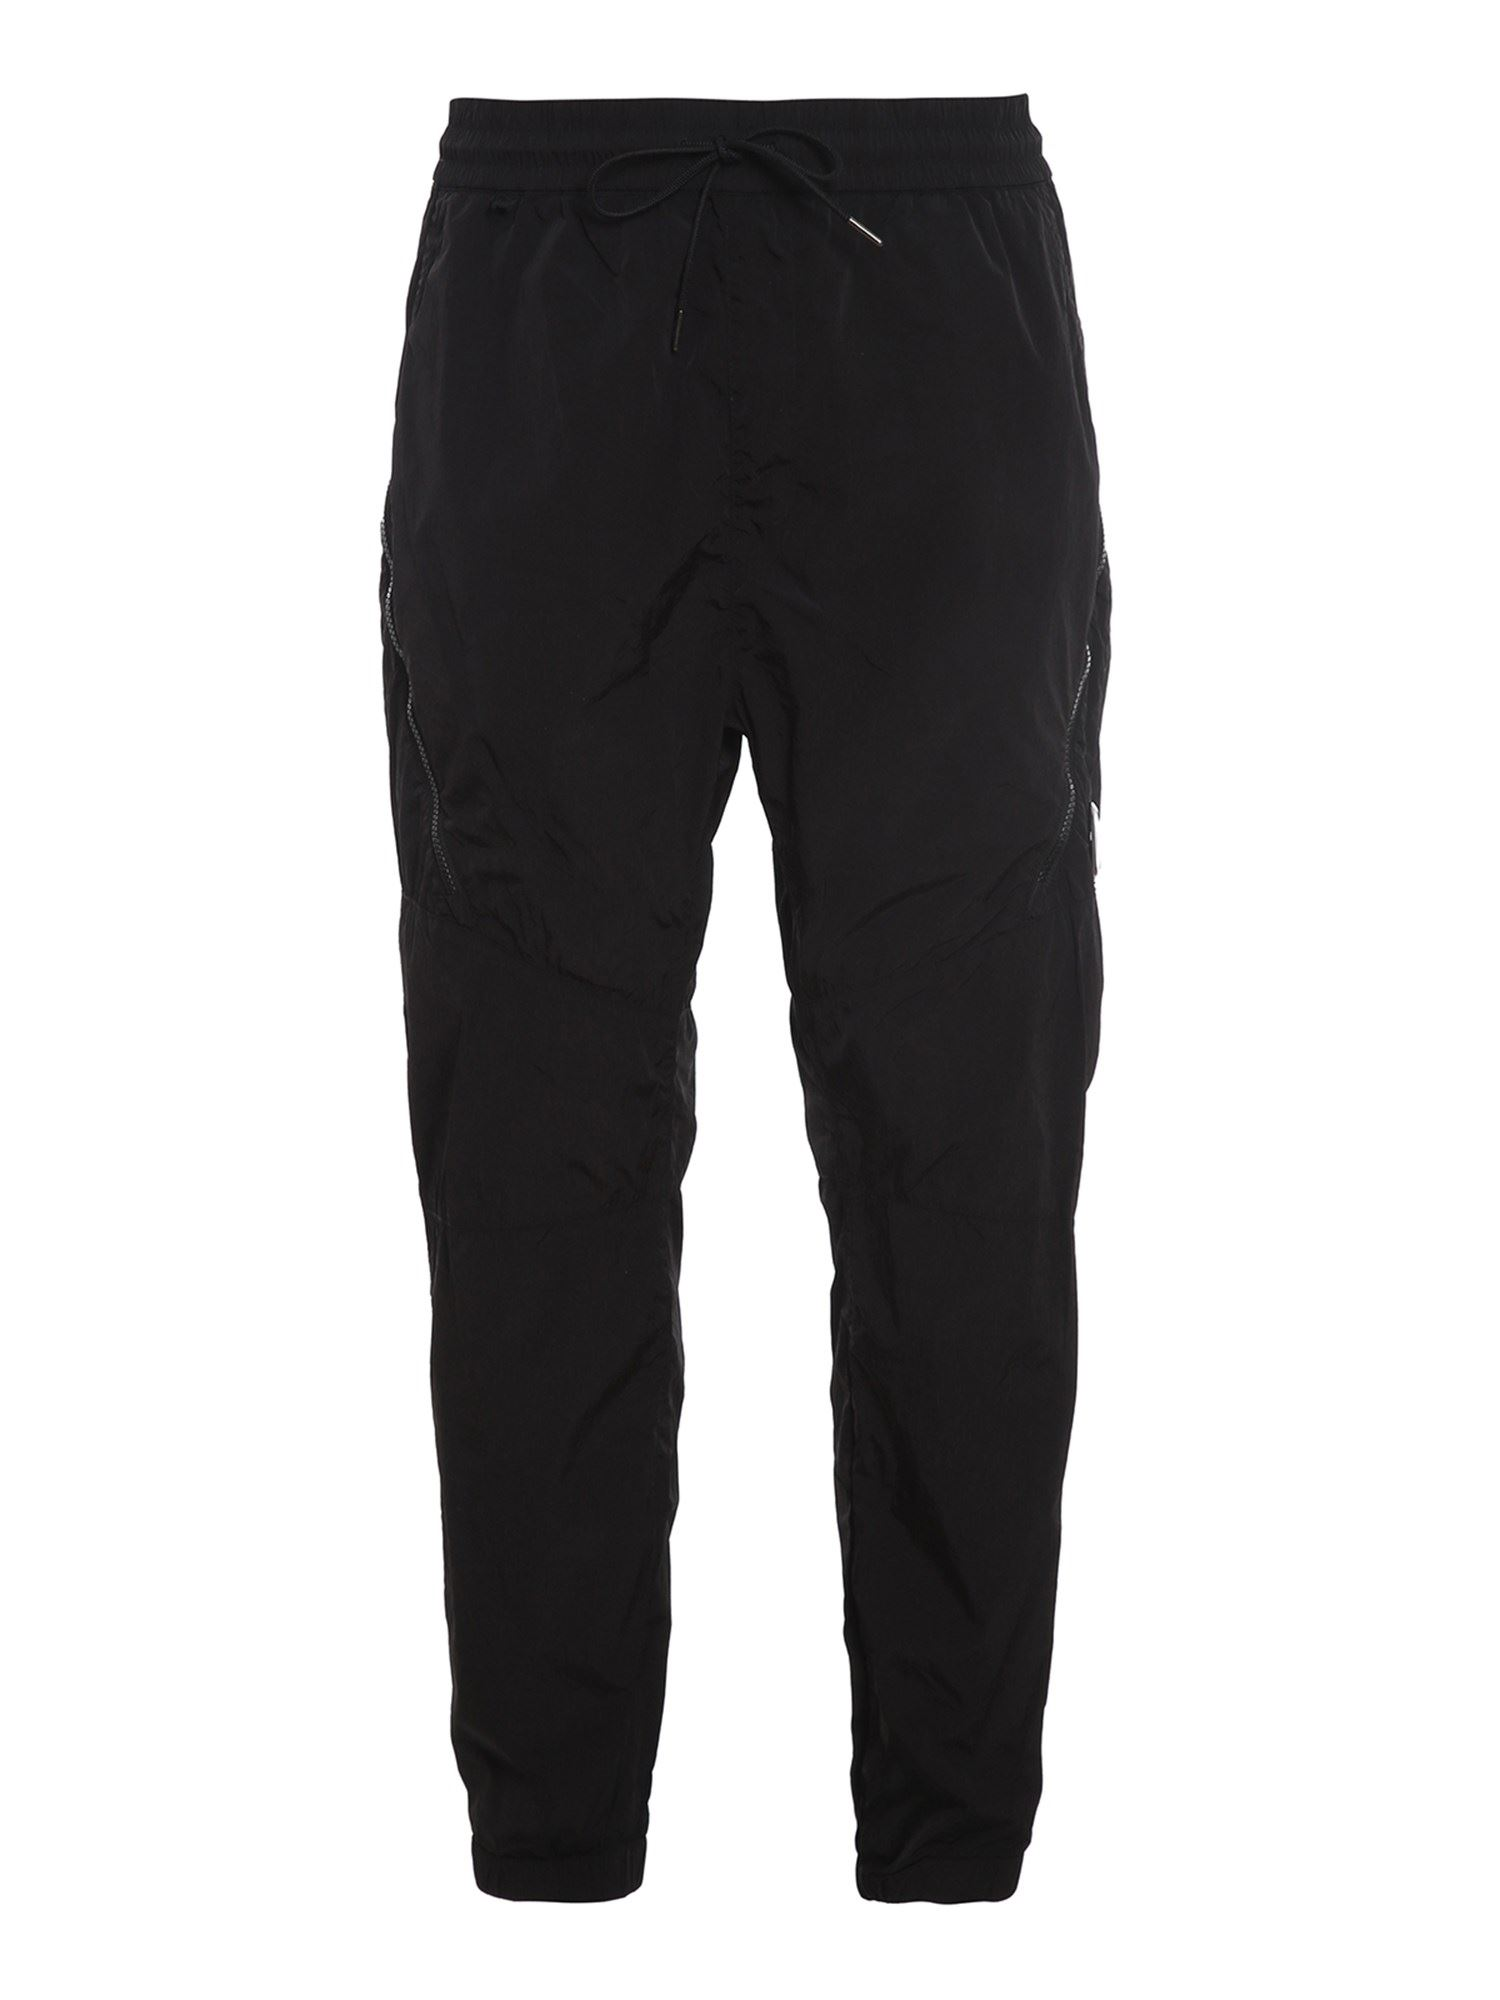 C.P. COMPANY CARGO TROUSERS IN BLACK